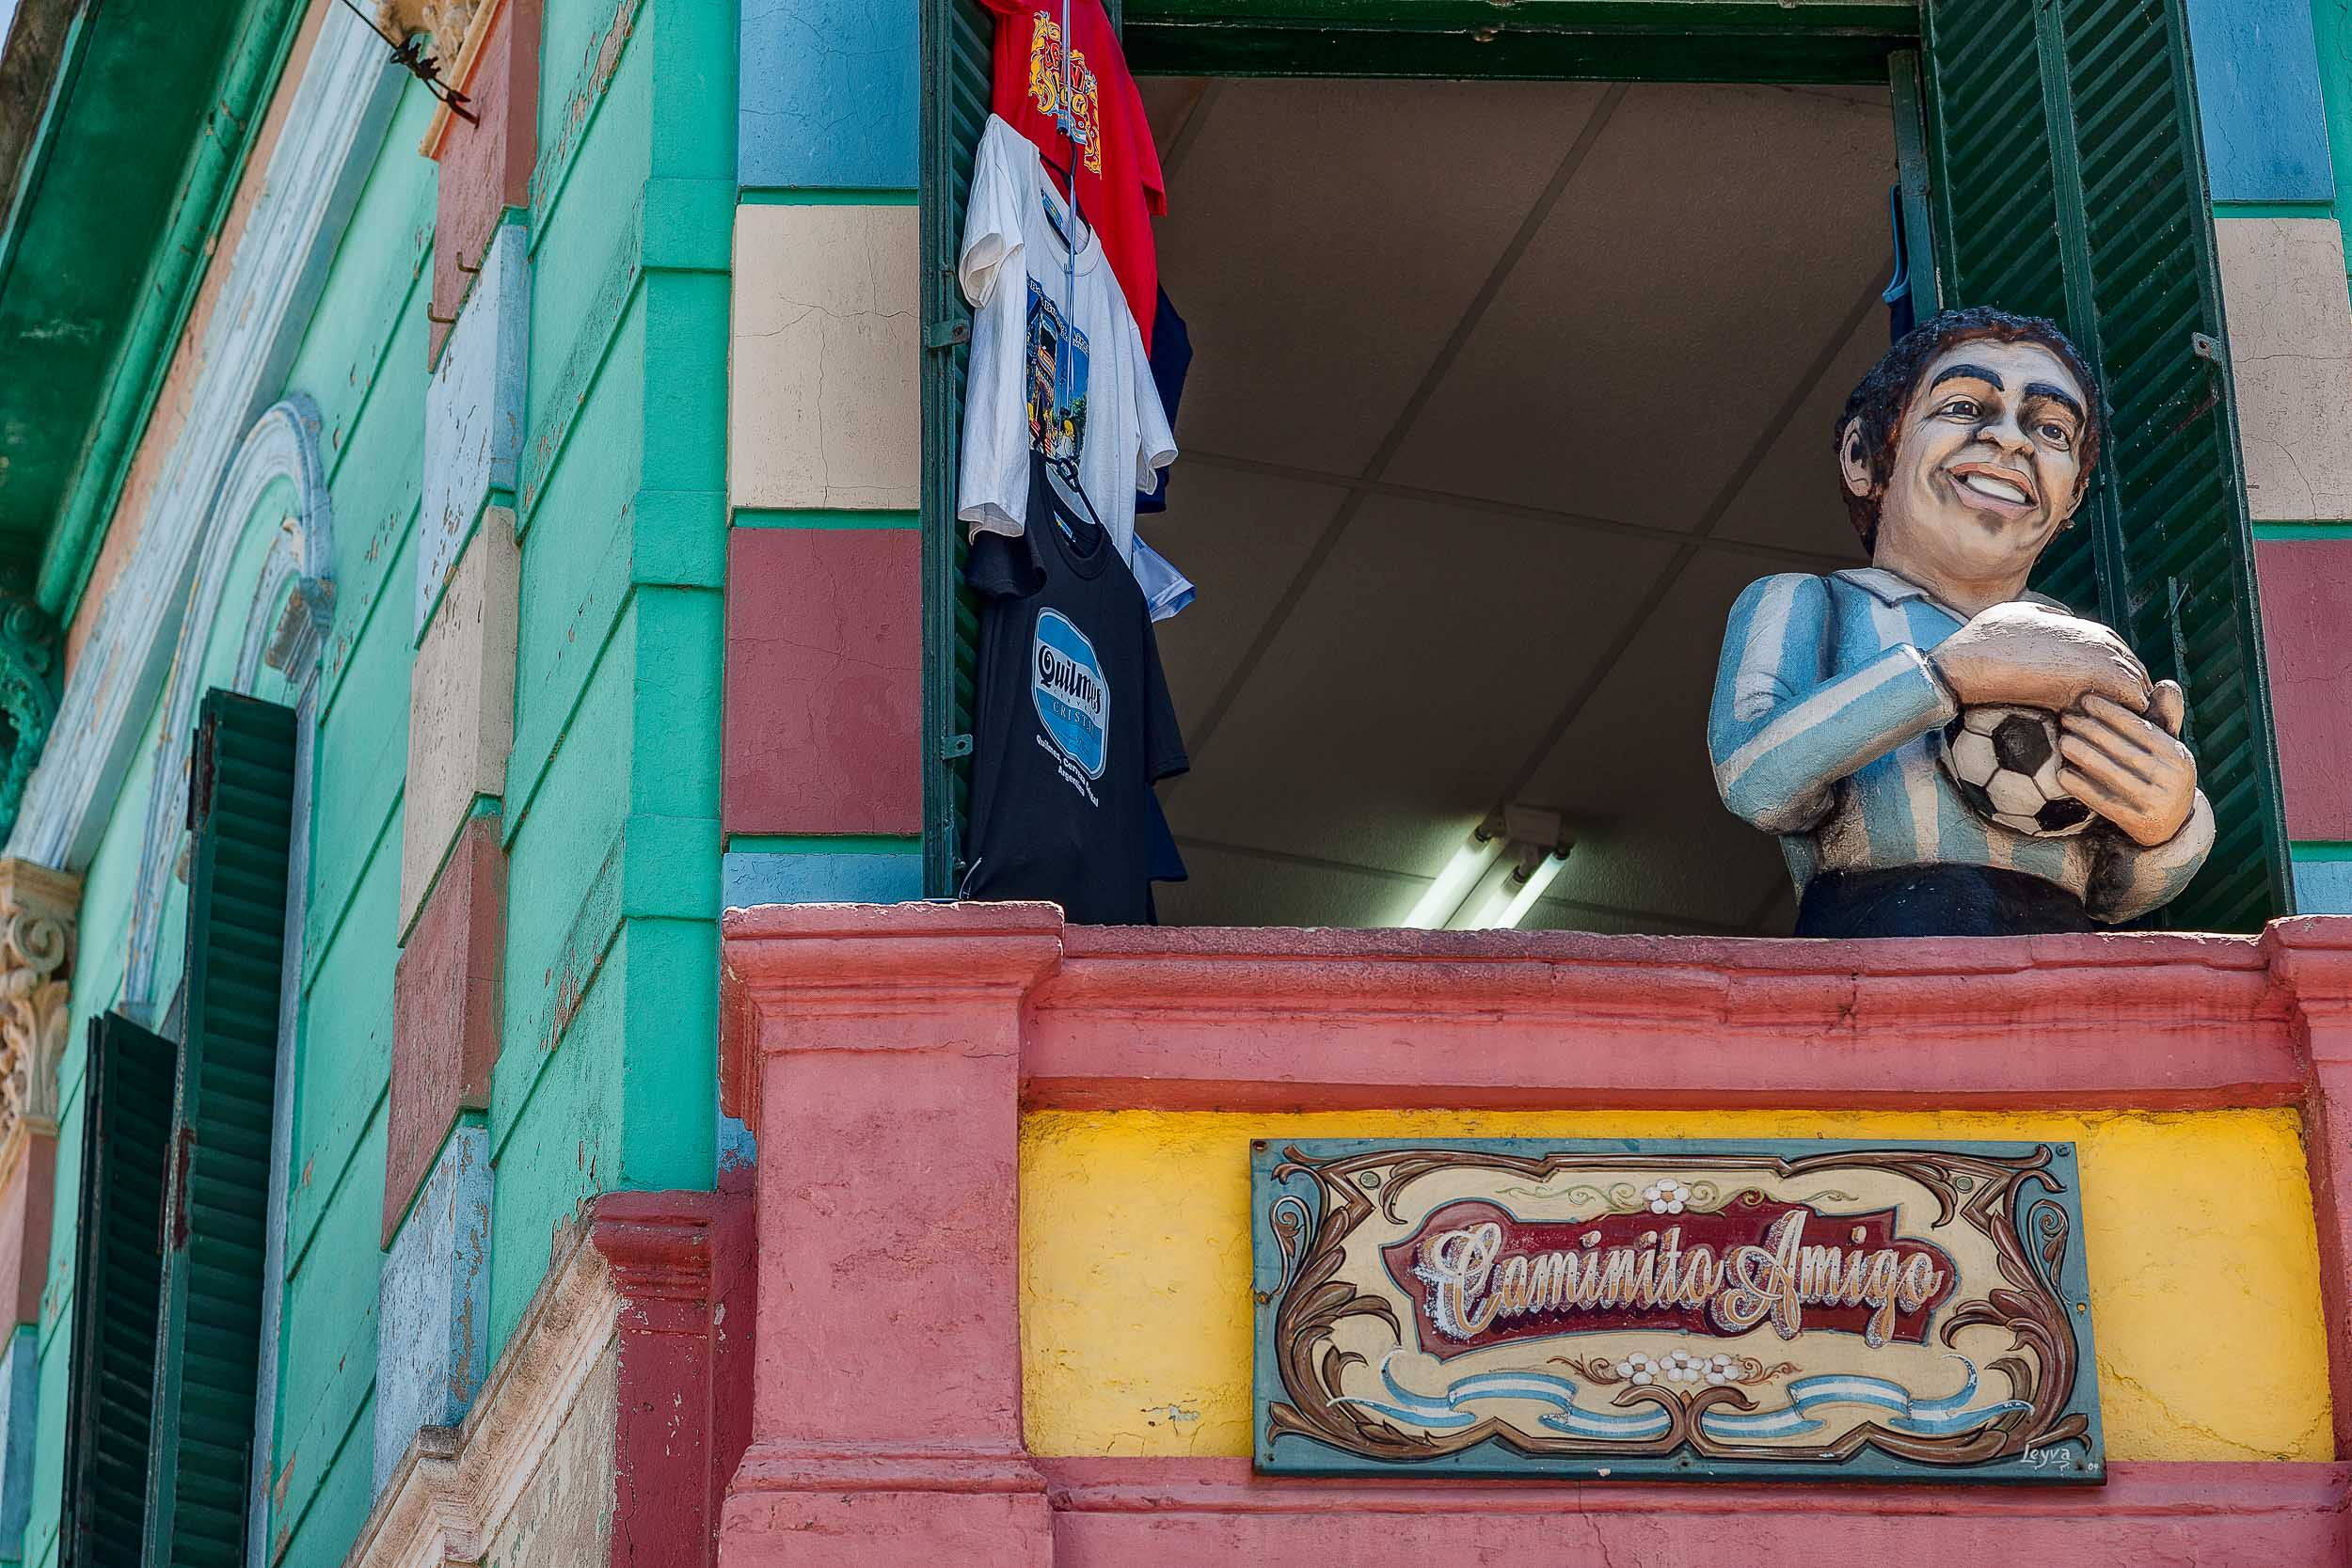 A    statue    of football legend    Diego Maradona    on a balcony in the    La Boca    precinct of    Buenos Aires, Argentina   .